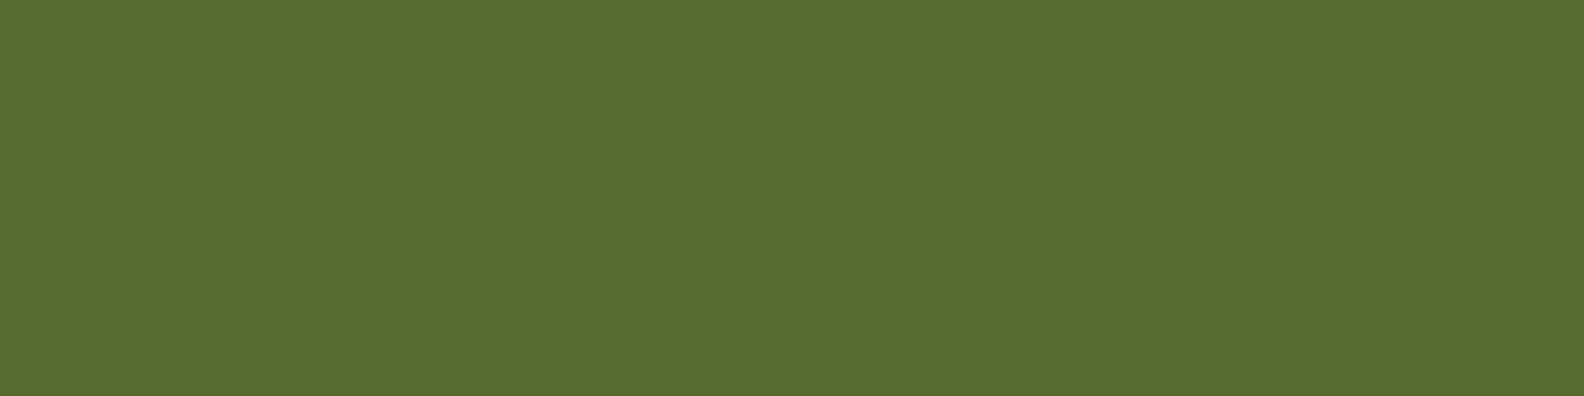 1584x396 Dark Olive Green Solid Color Background